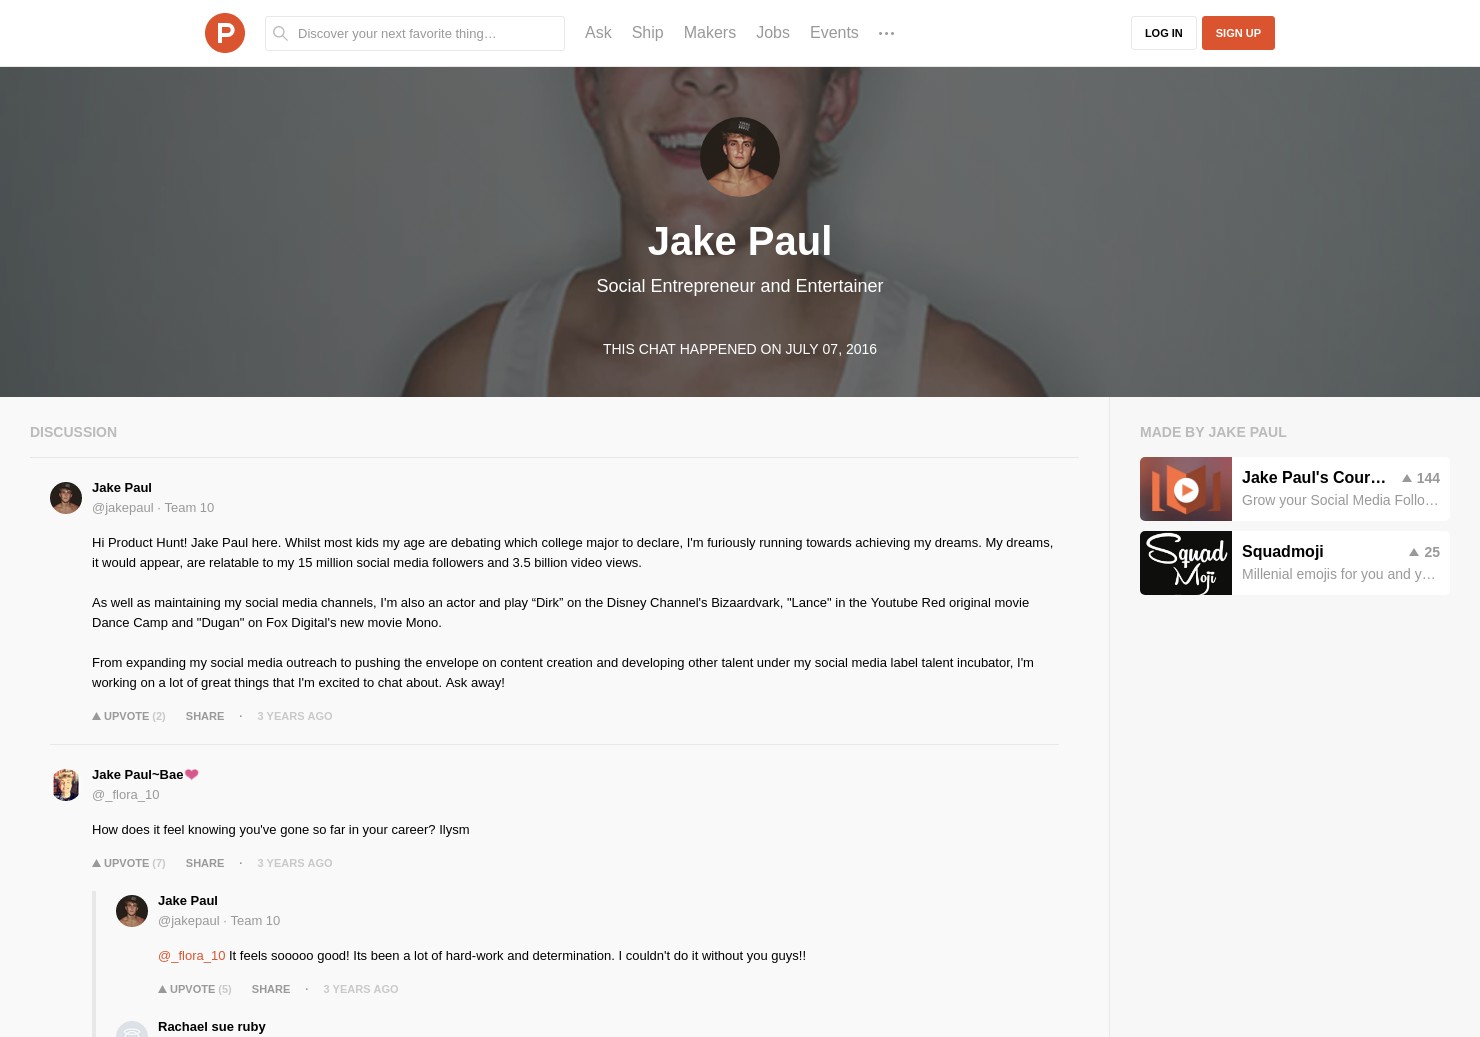 Jake Paul LIVE Chat on Product Hunt